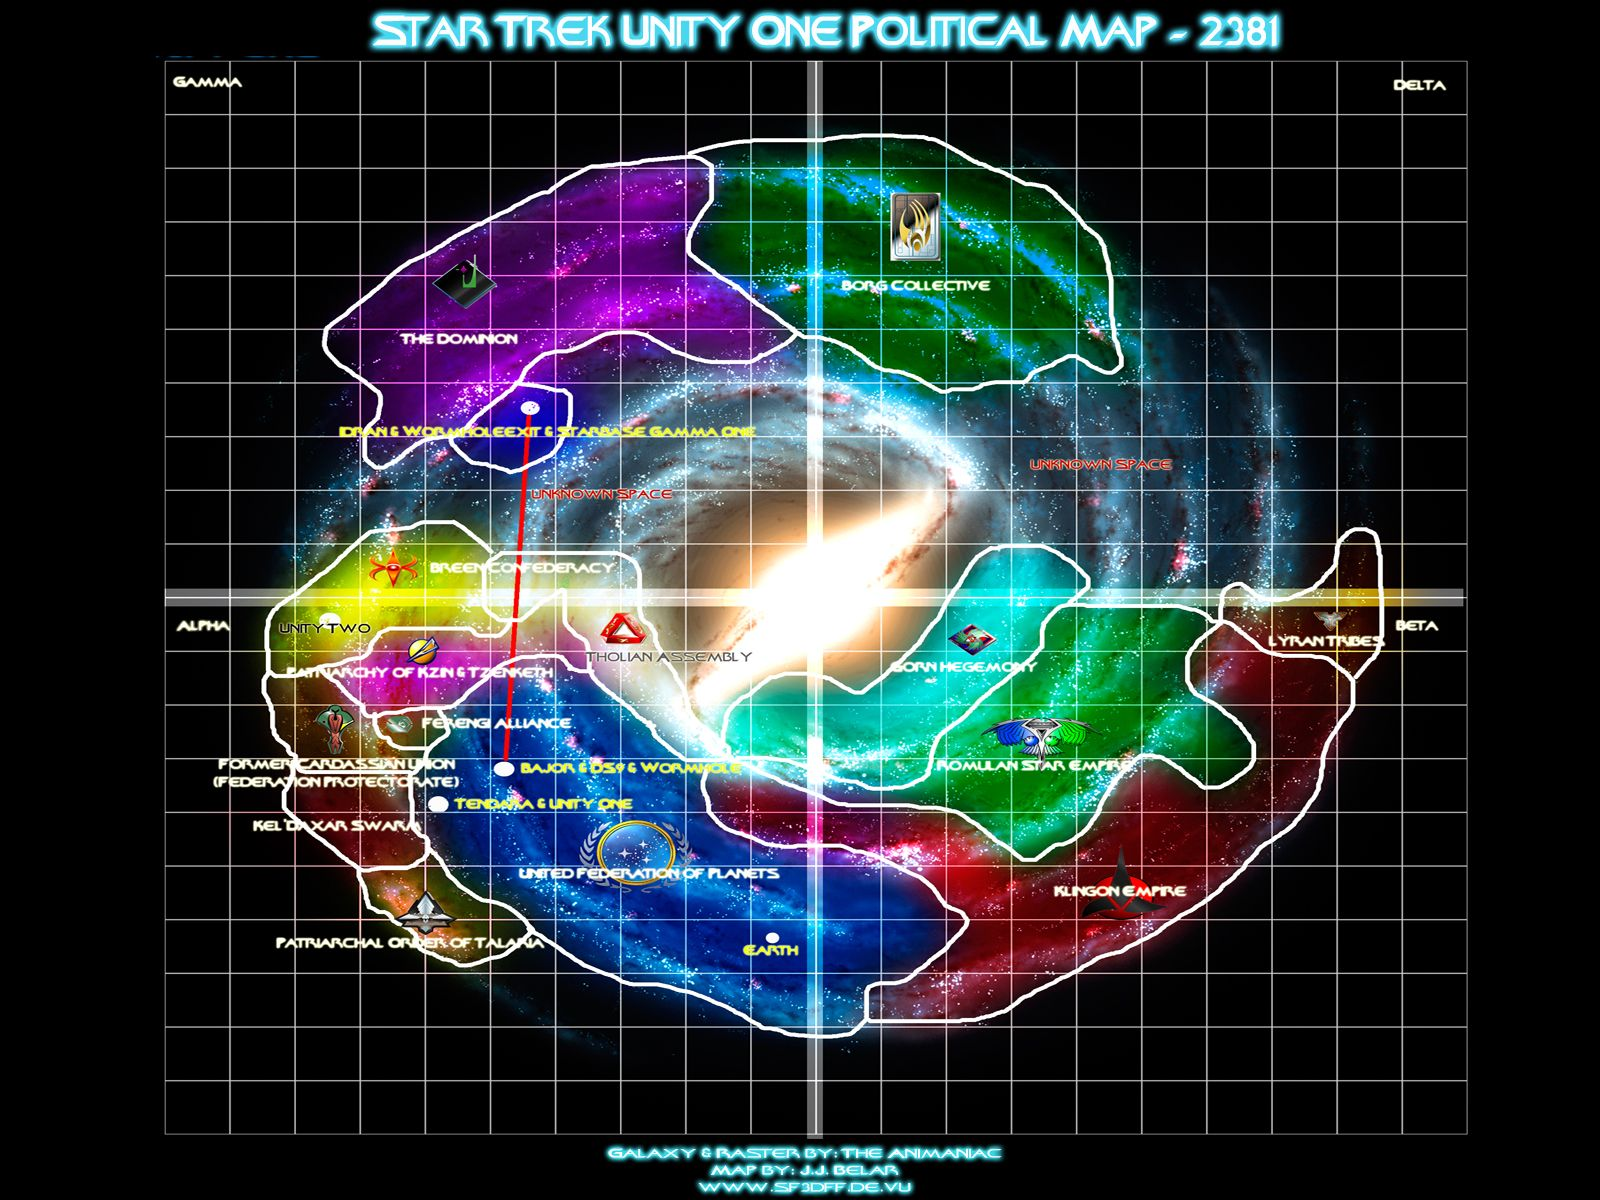 Star Trek Unity One Political Map 2381 Sci Fi Star Trek Star